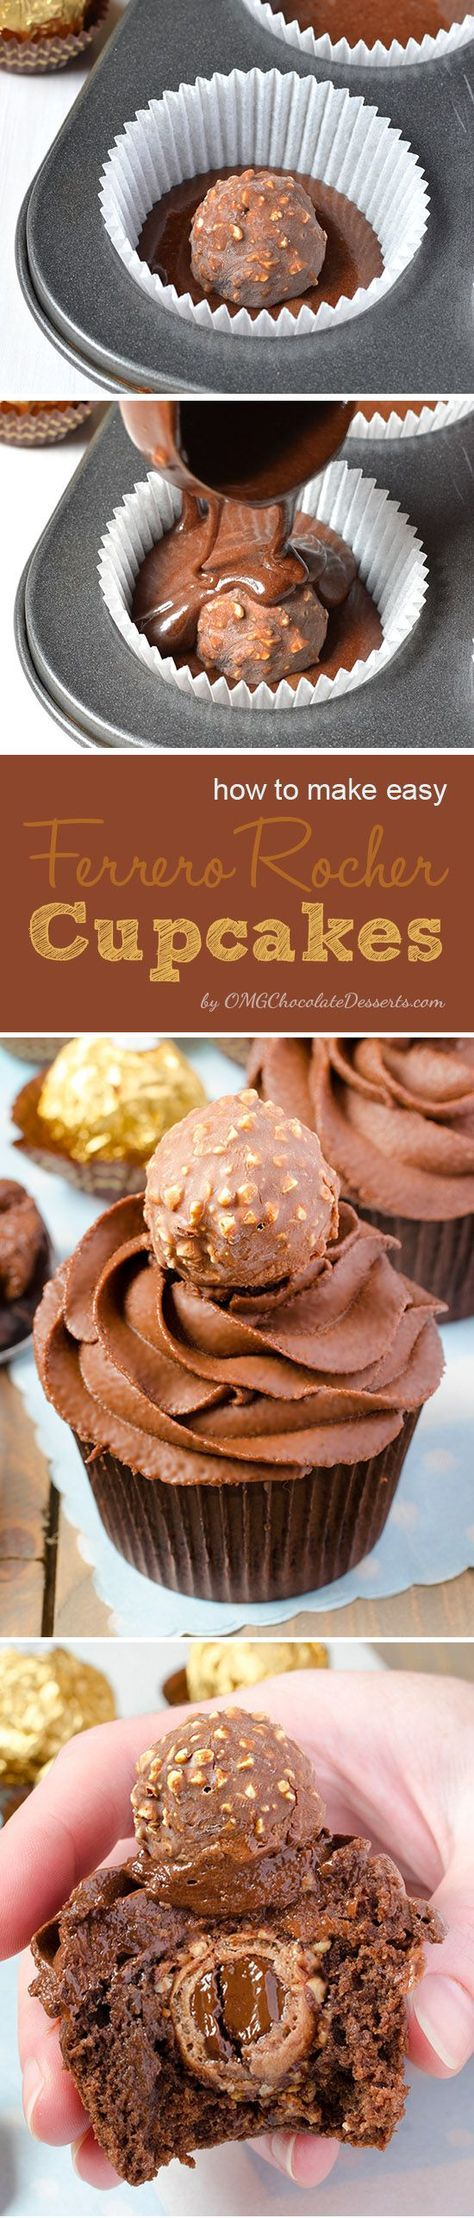 Ultimate guide to saving your gorgeous Ferrero Rocher Cupcakes alive during the preparation time :) #desserts #cupcakes